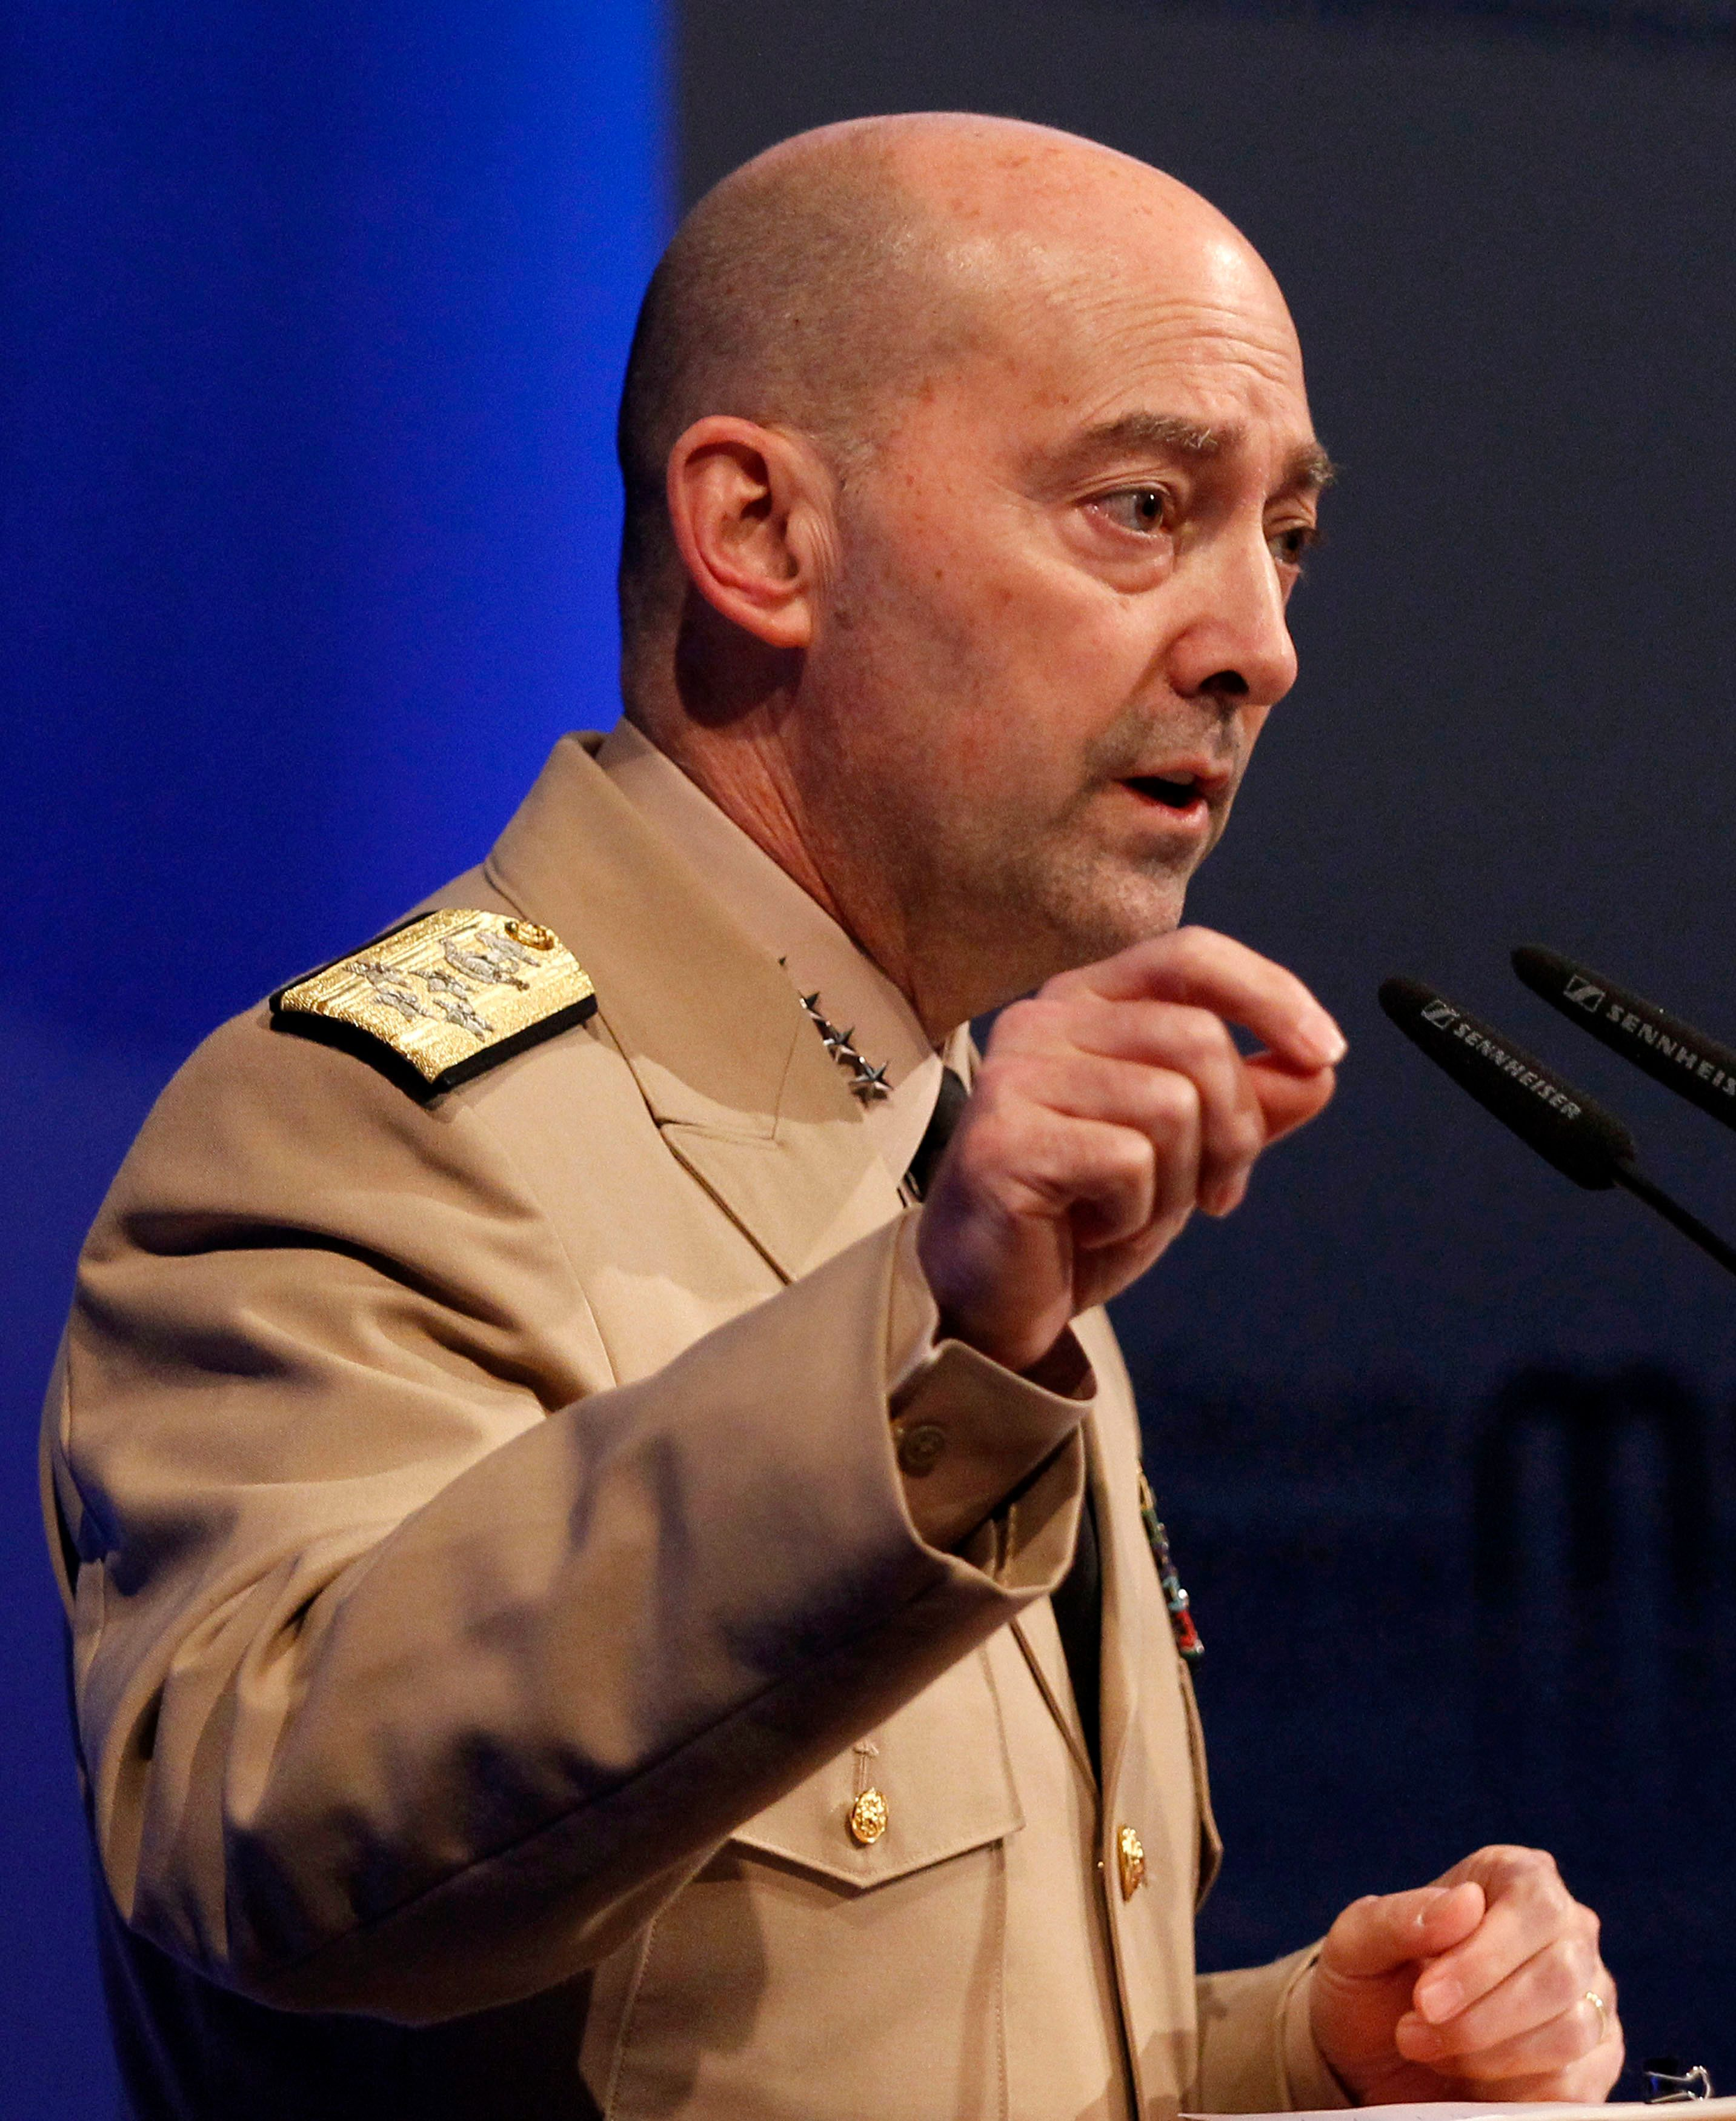 NATO Supreme Allied Commander Europe (SACEUR) U.S. Navy Admiral James Stavridis delivers a speech before a panel discussion in Berlin January 24, 2012. REUTERS/Tobias Schwarz (GERMANY - Tags: POLITICS MILITARY)